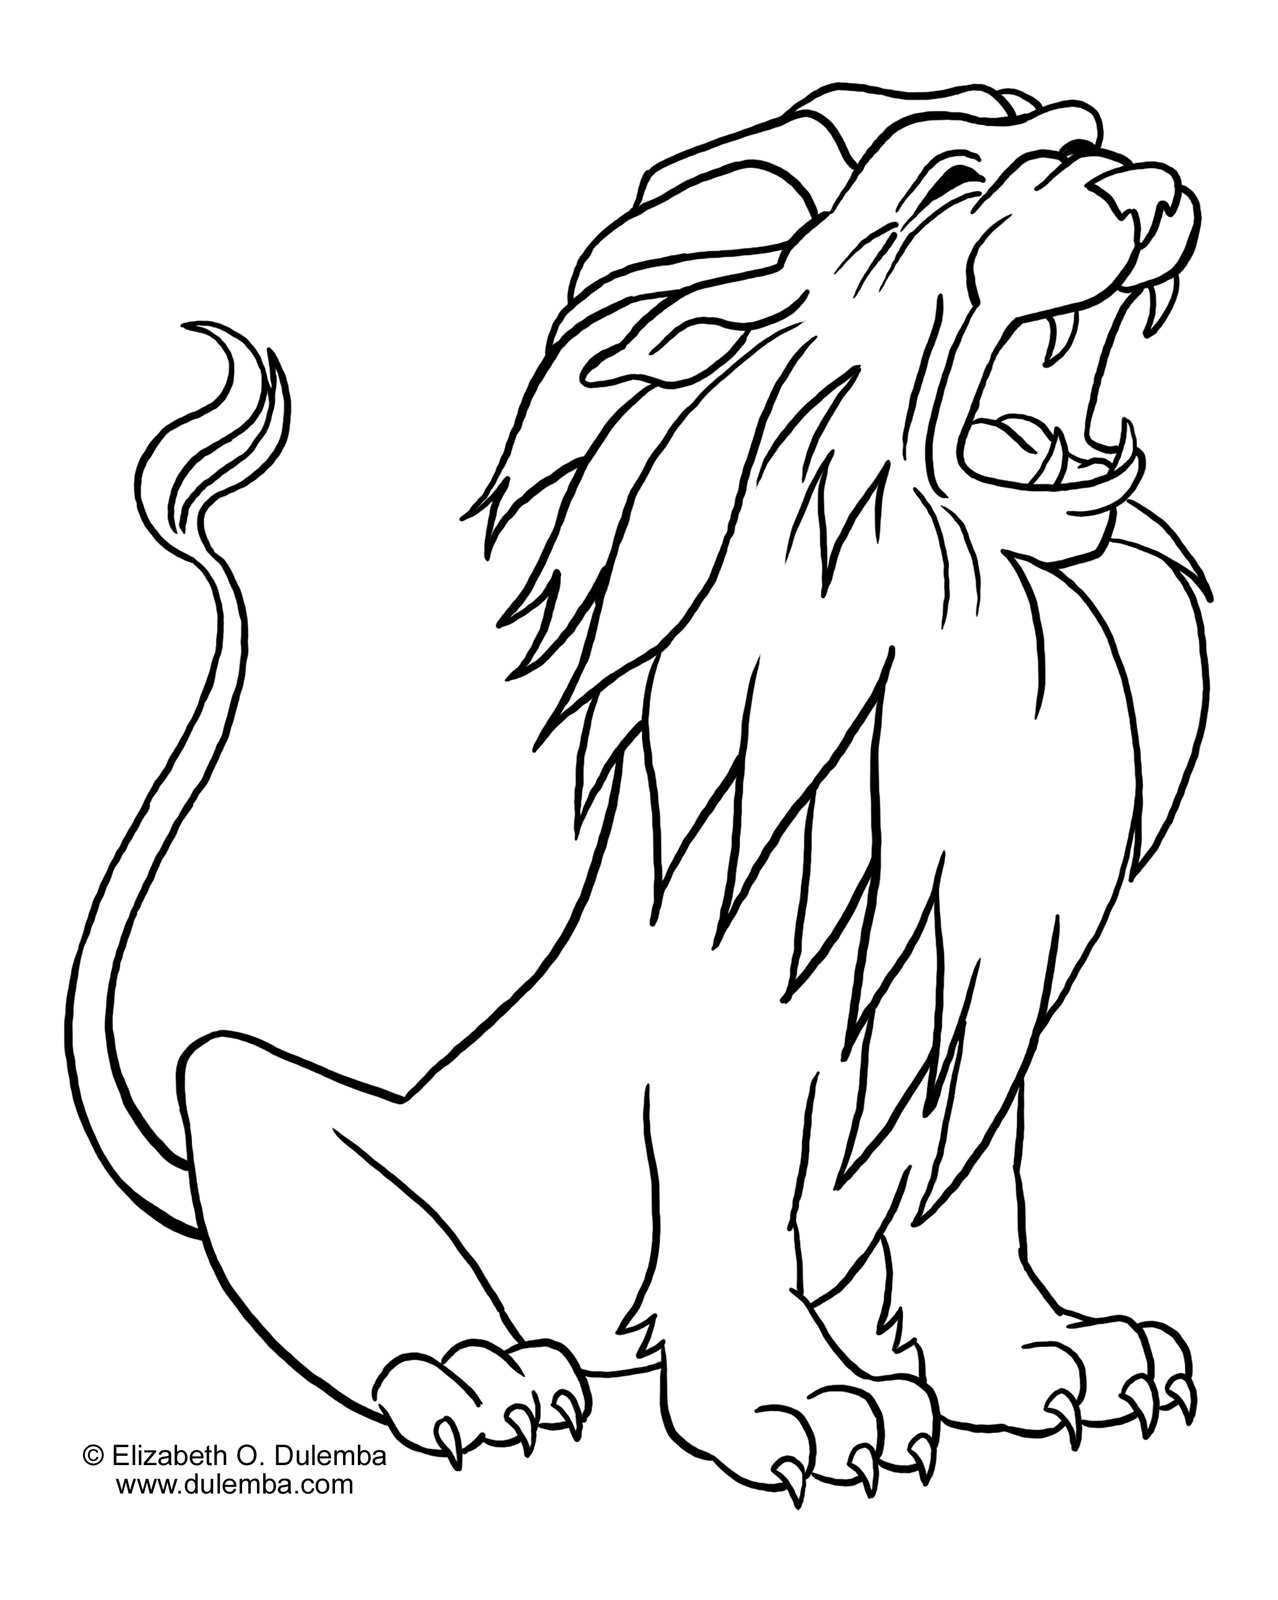 picture of lion coloring page free easy to print lion coloring pages tulamama lion picture coloring page of